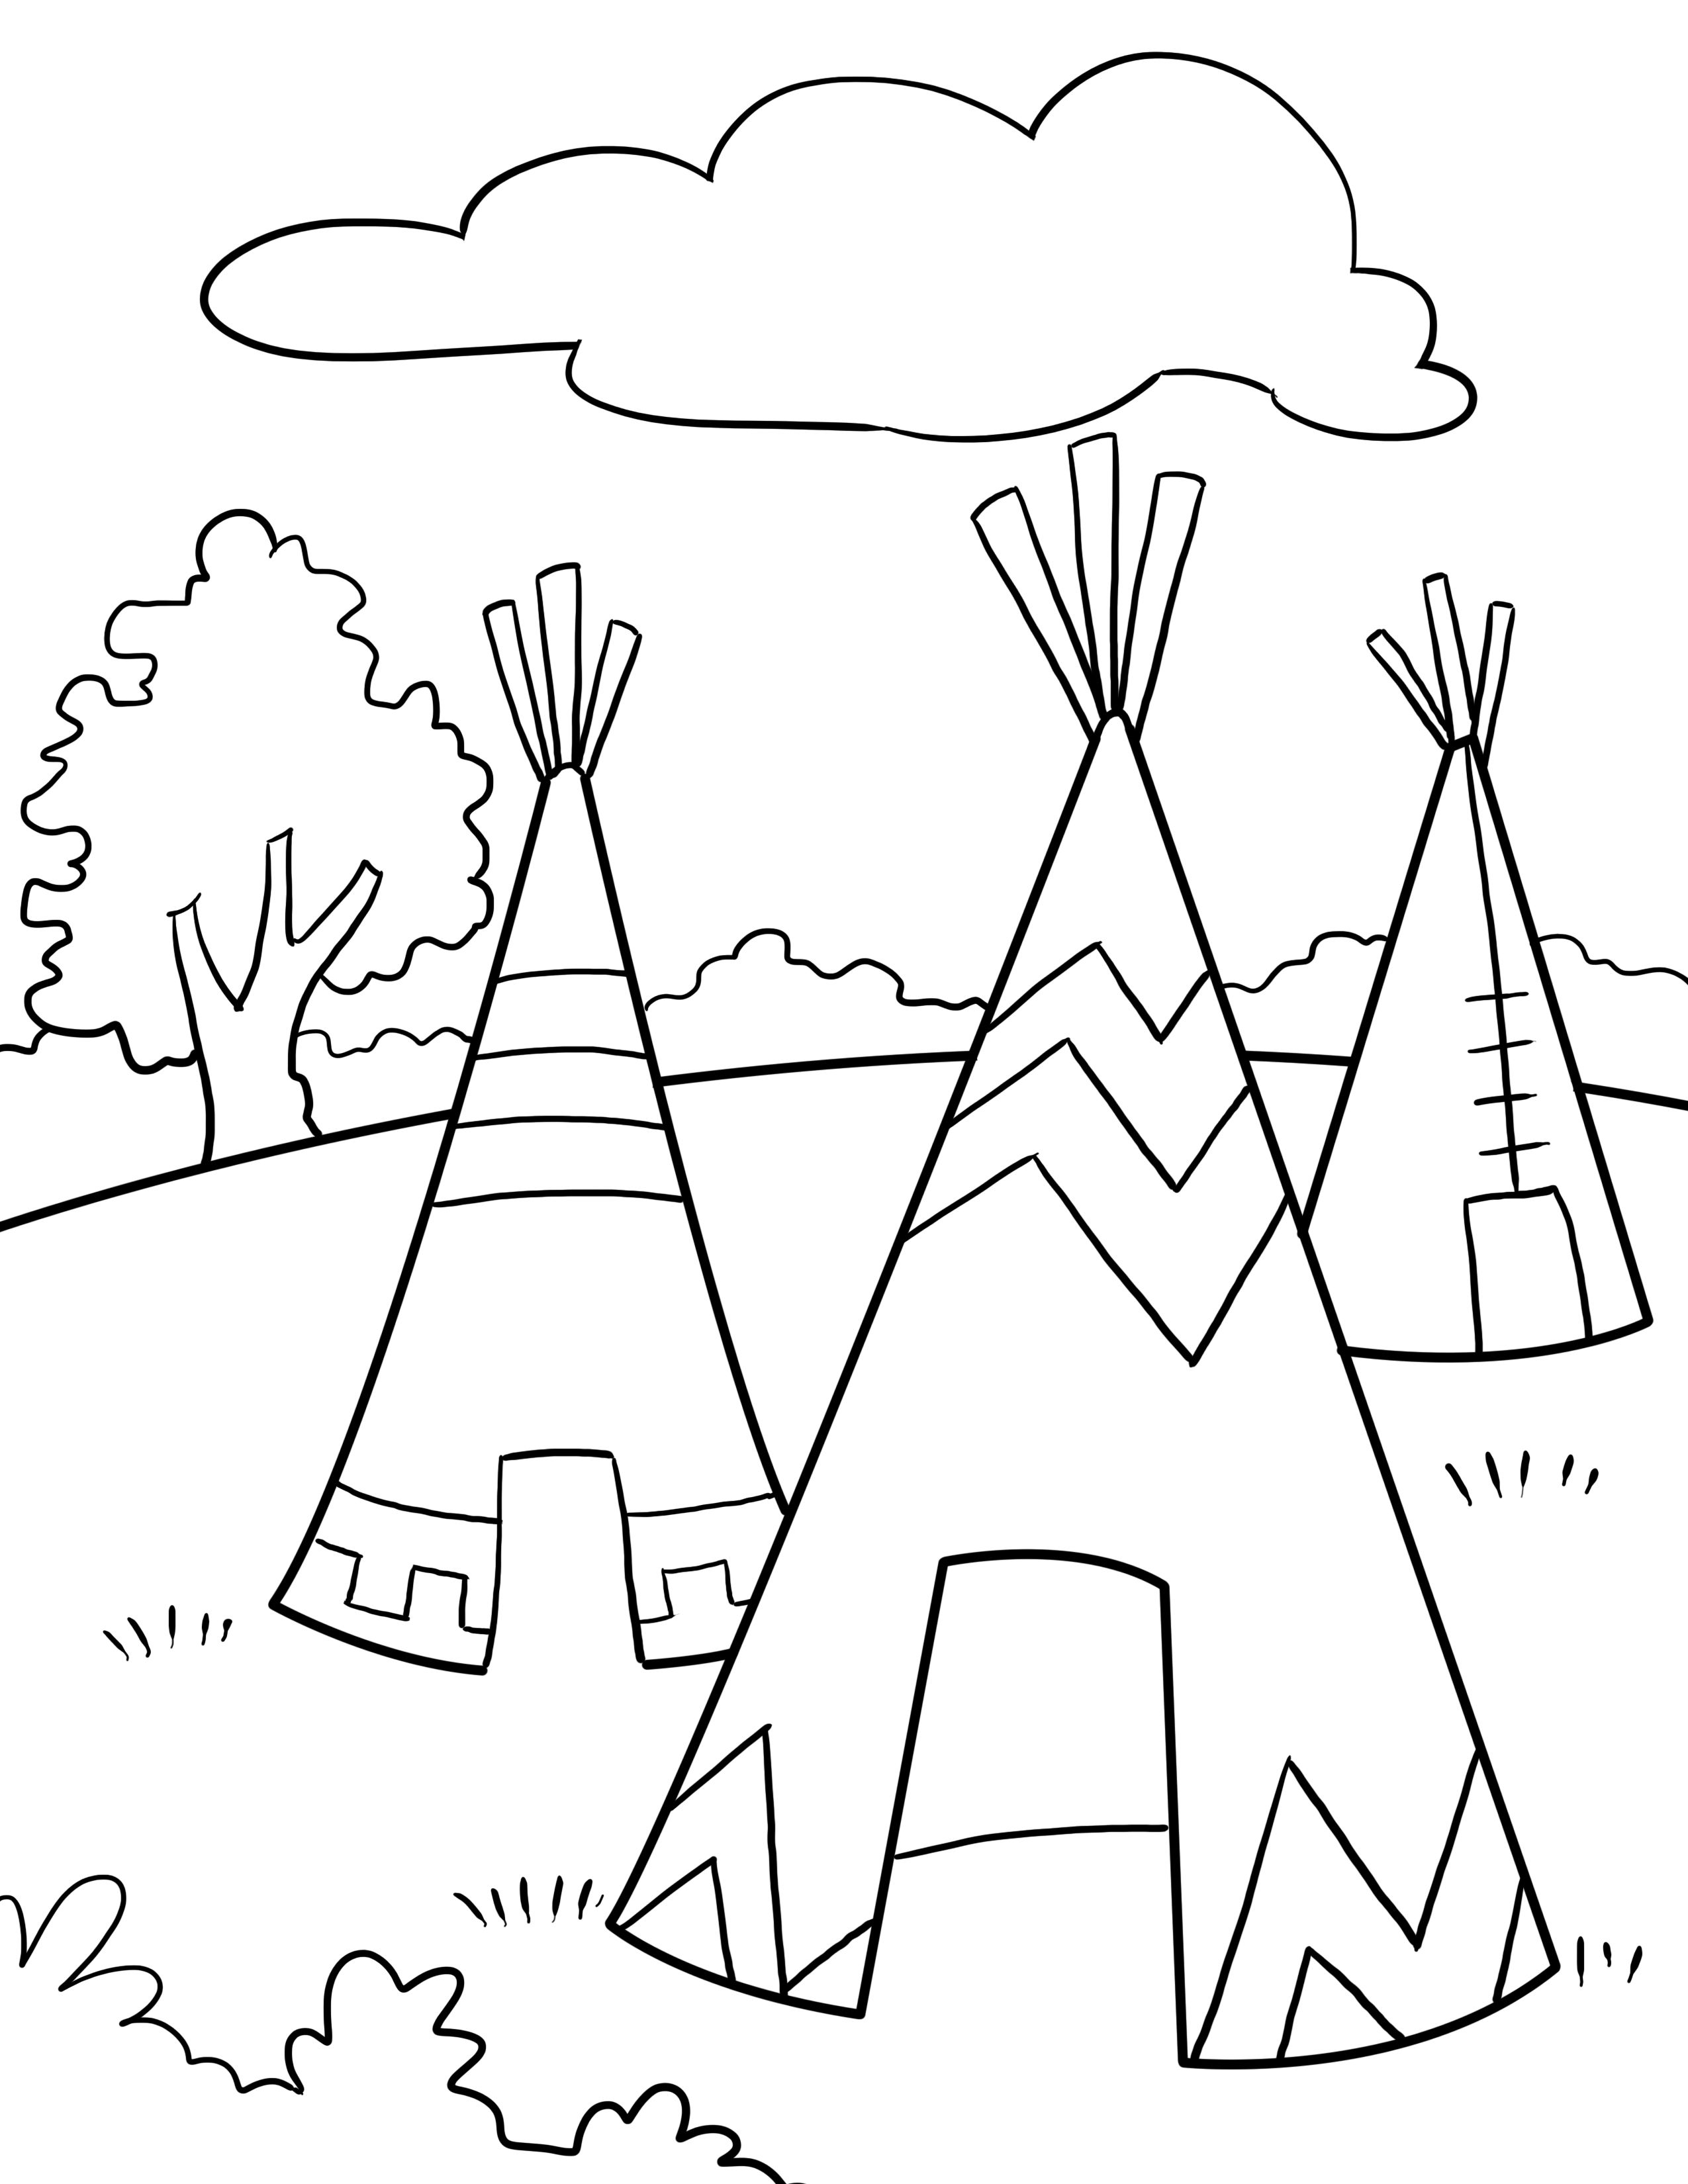 Thanksgiving Coloring Pages | Preschool And Craft Ideas